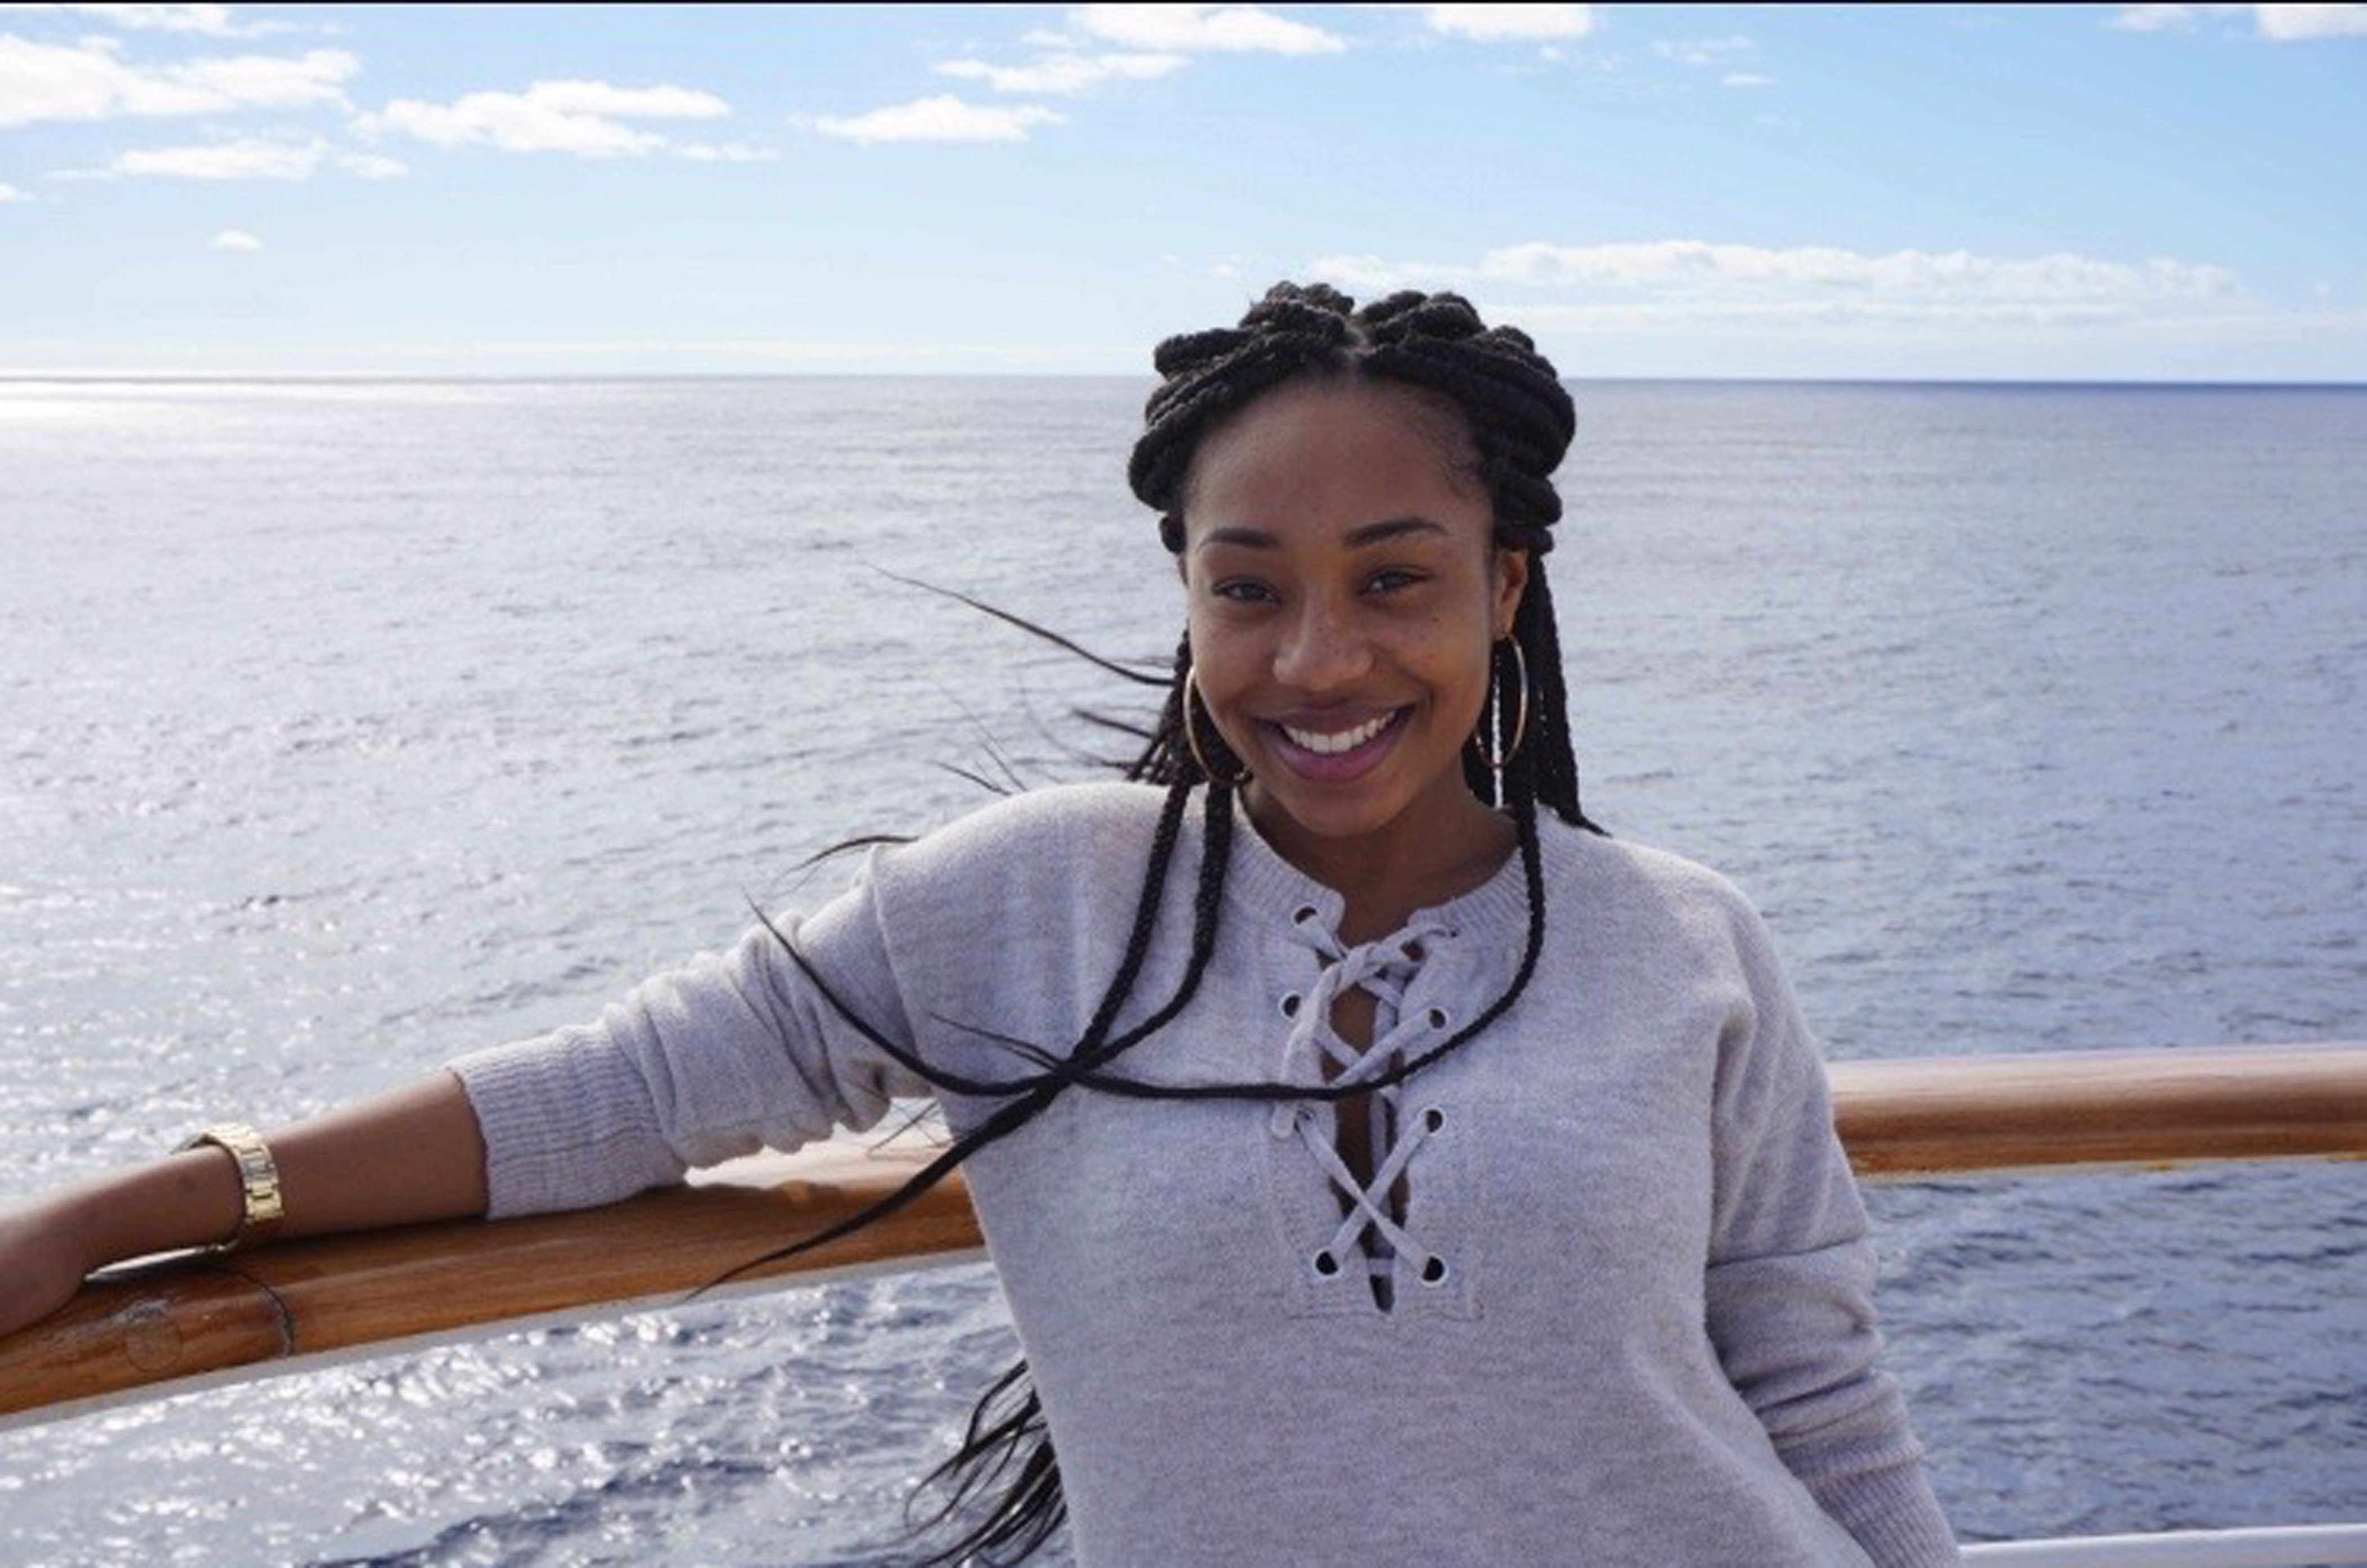 Deja Marsh spent long stretches surrounded by water,to travel to many interesting and exotic sites around the world.